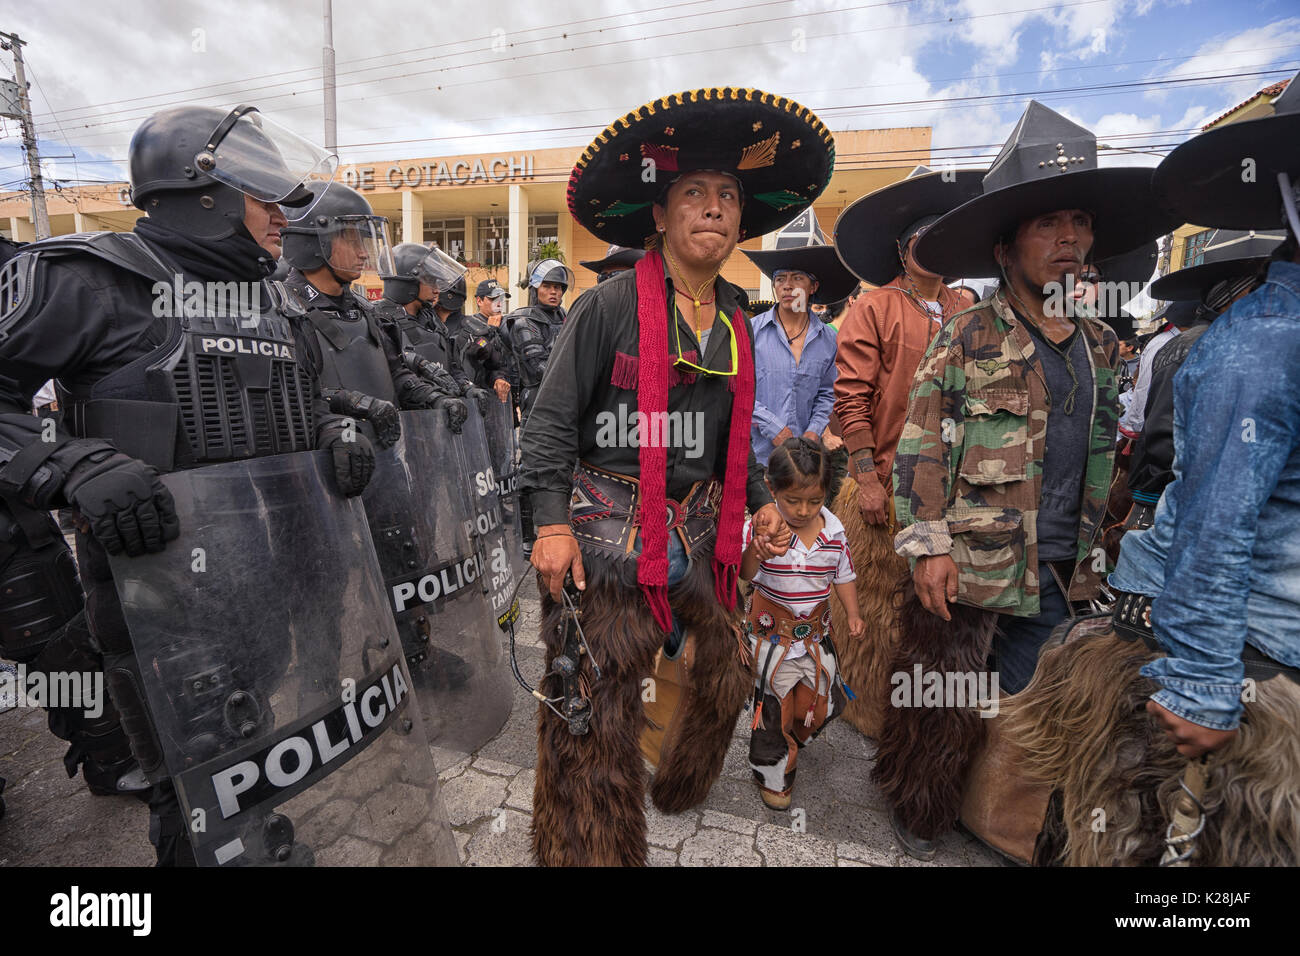 June 25, 2017 Cotacachi, Ecuador: police closing off access to a street during Inti Raymi parade to separate the male dancer groups and avoid violence - Stock Image